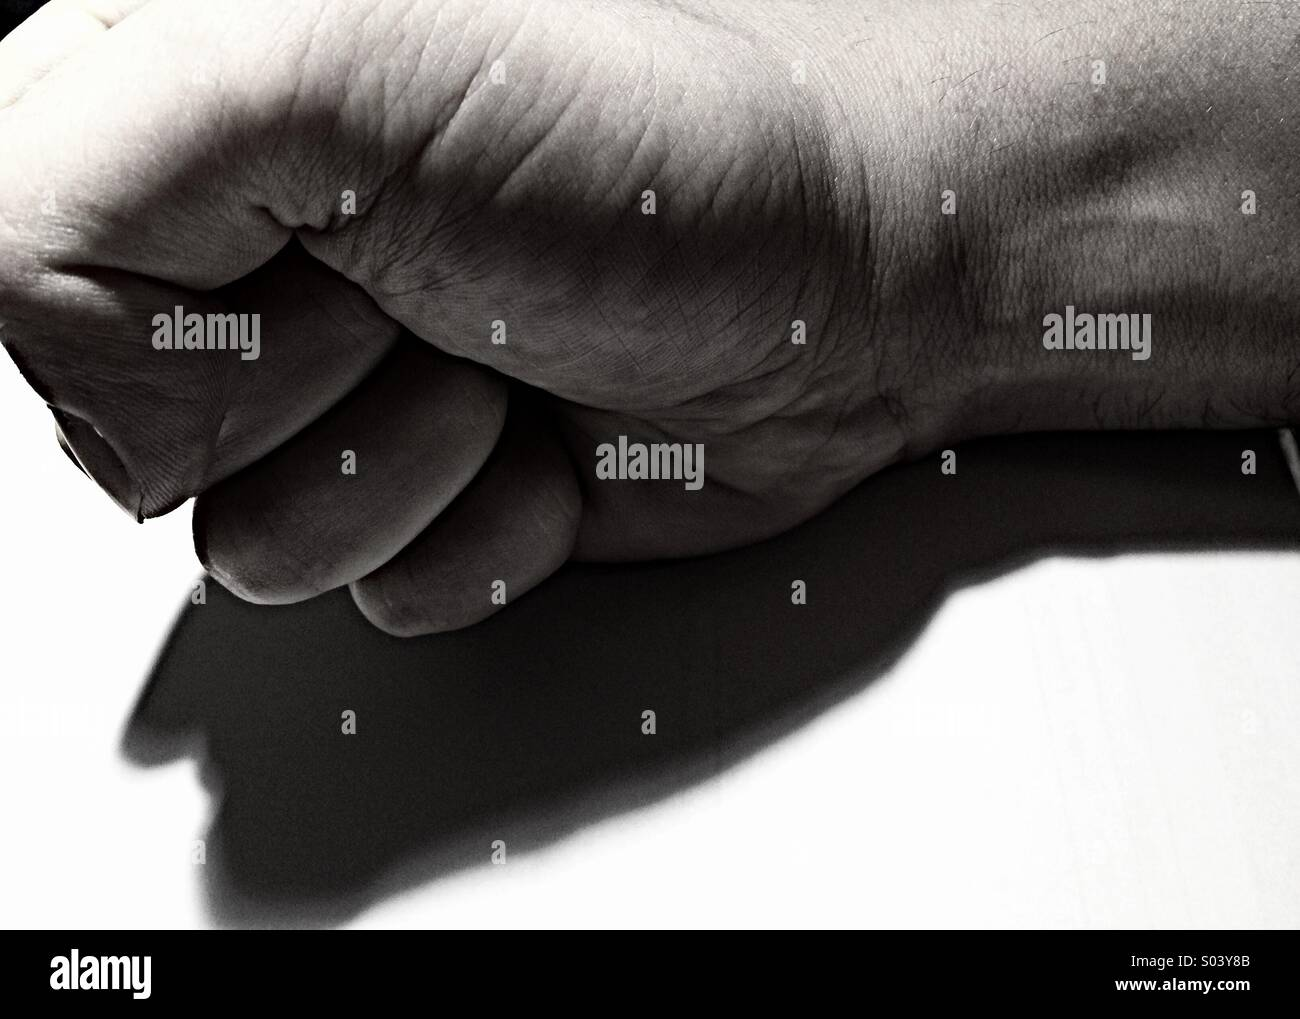 A closed fist symbolizing anger - Stock Image